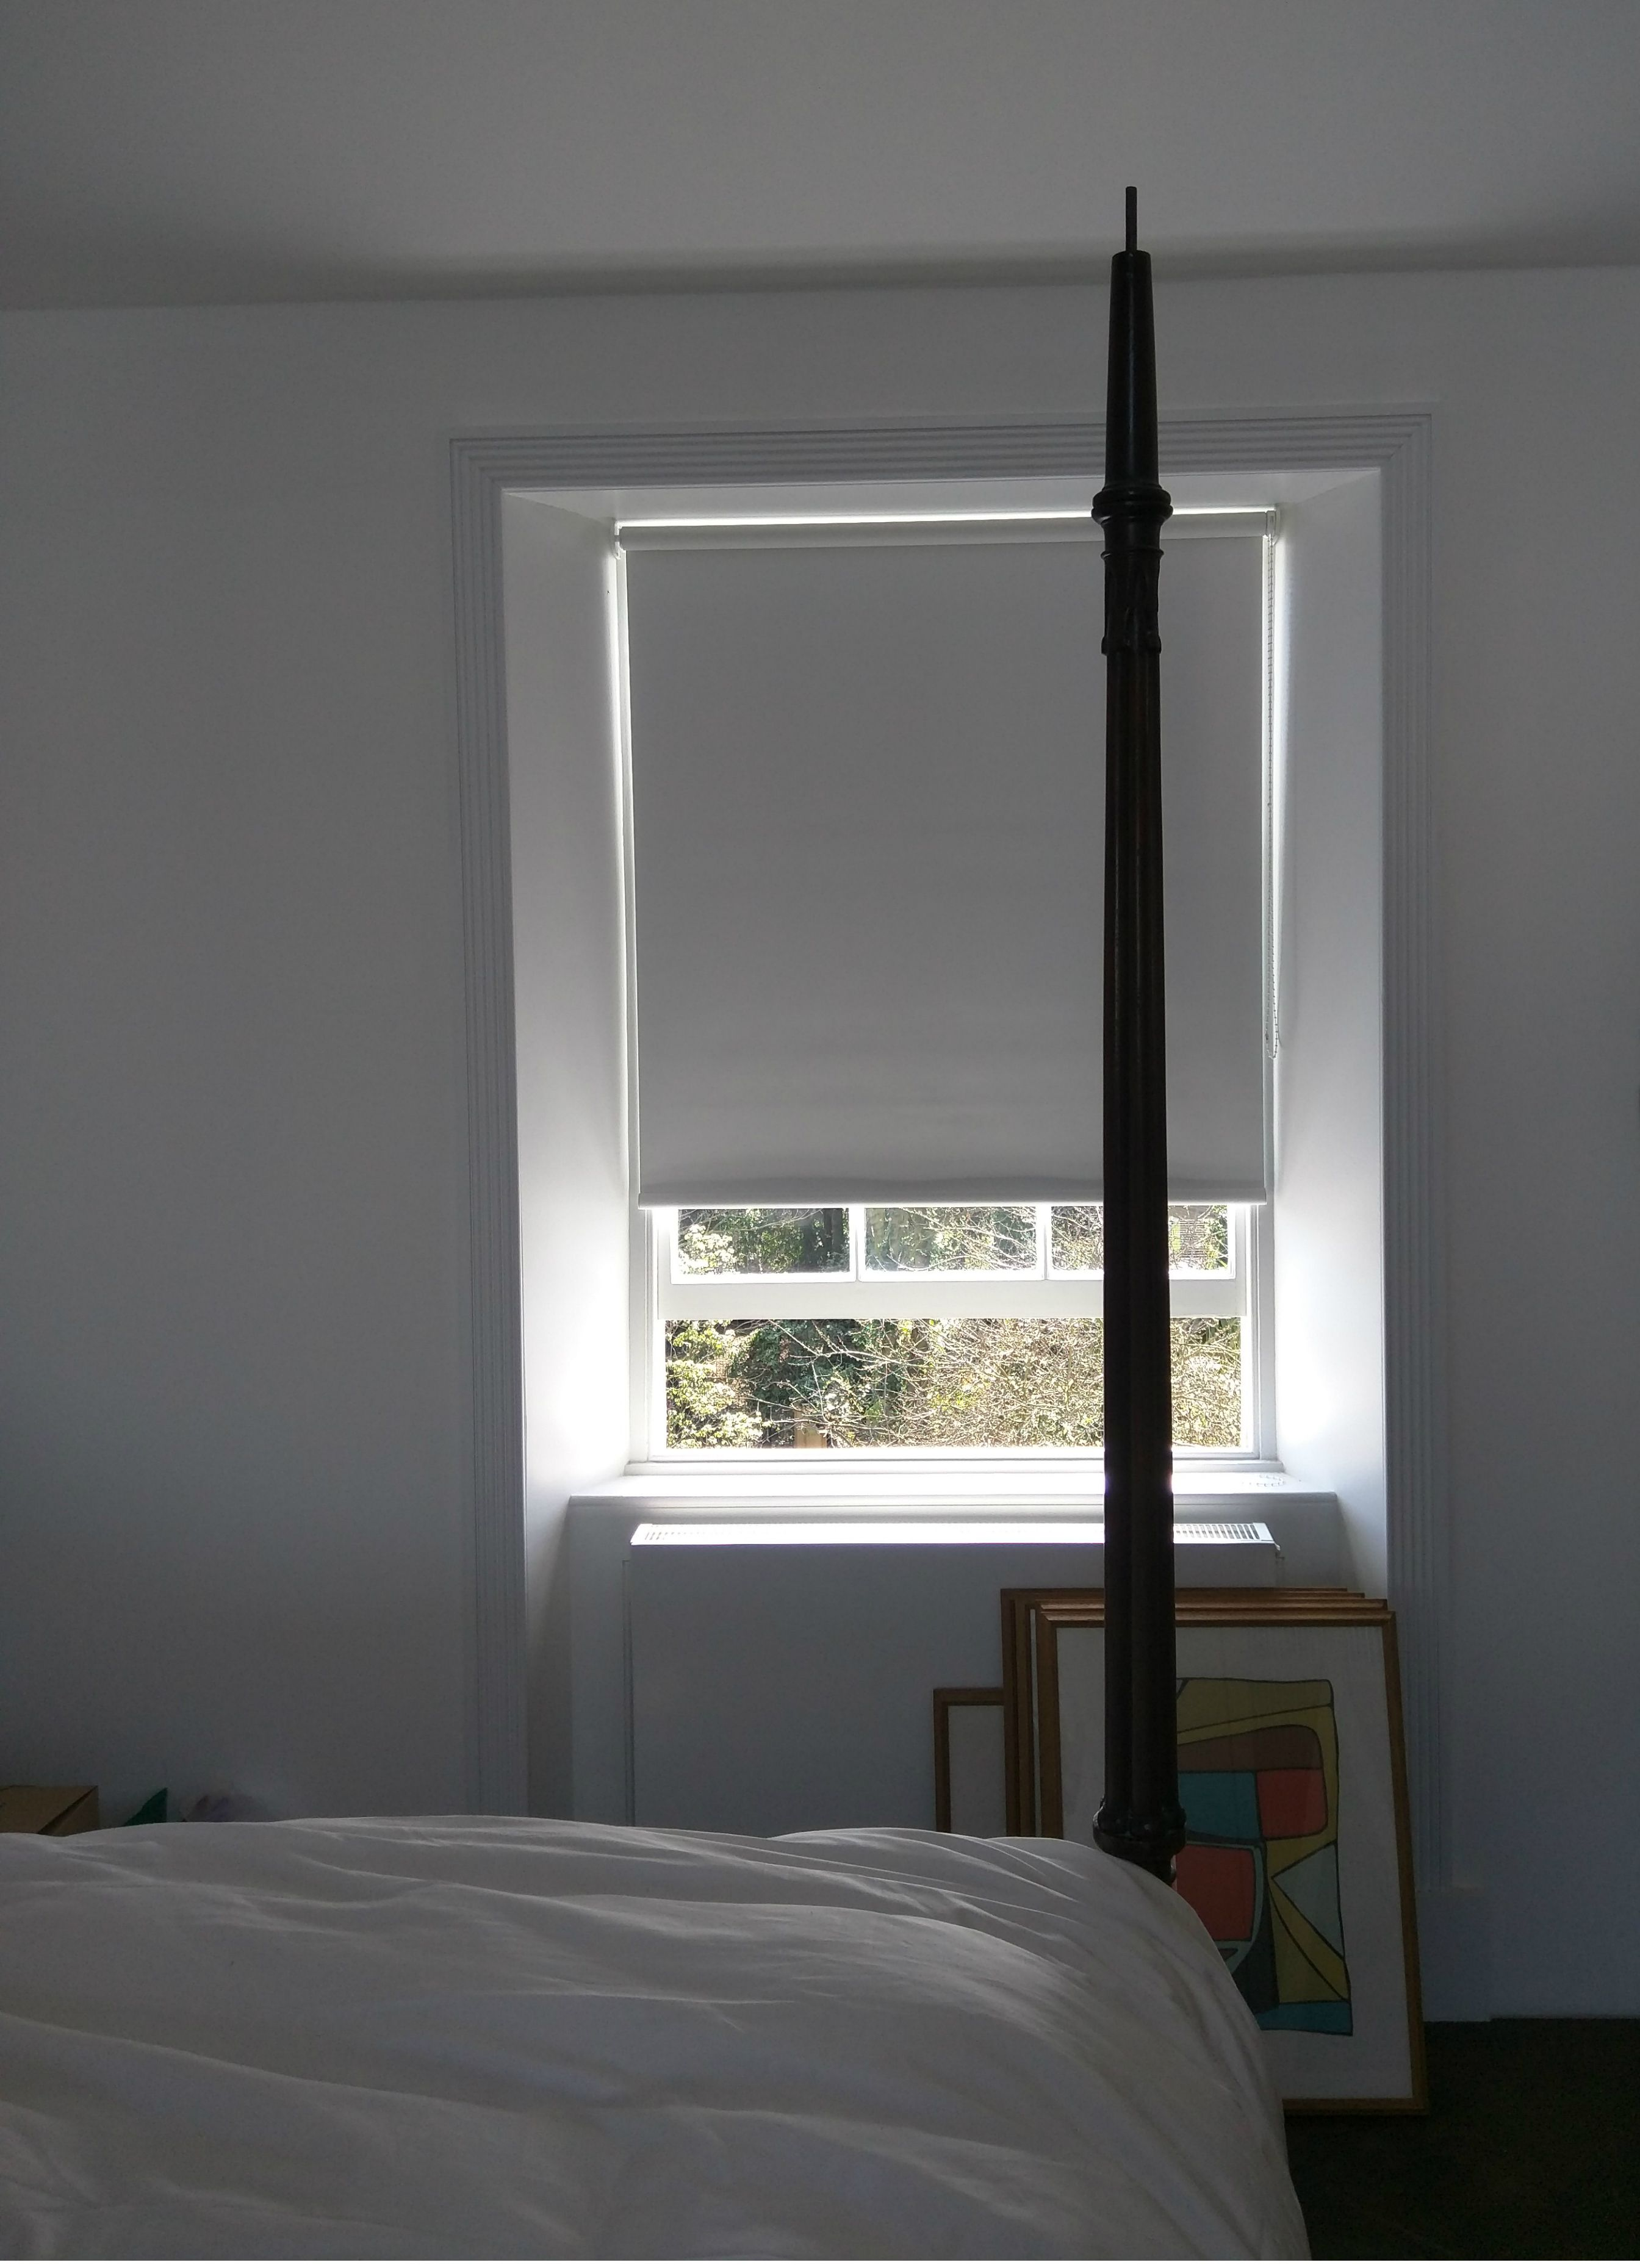 Blackout Roller Blind In Polar White | Bedroom Blind | Sash Window Blind |  Modern Interior | Made To Measure | Dalston, London